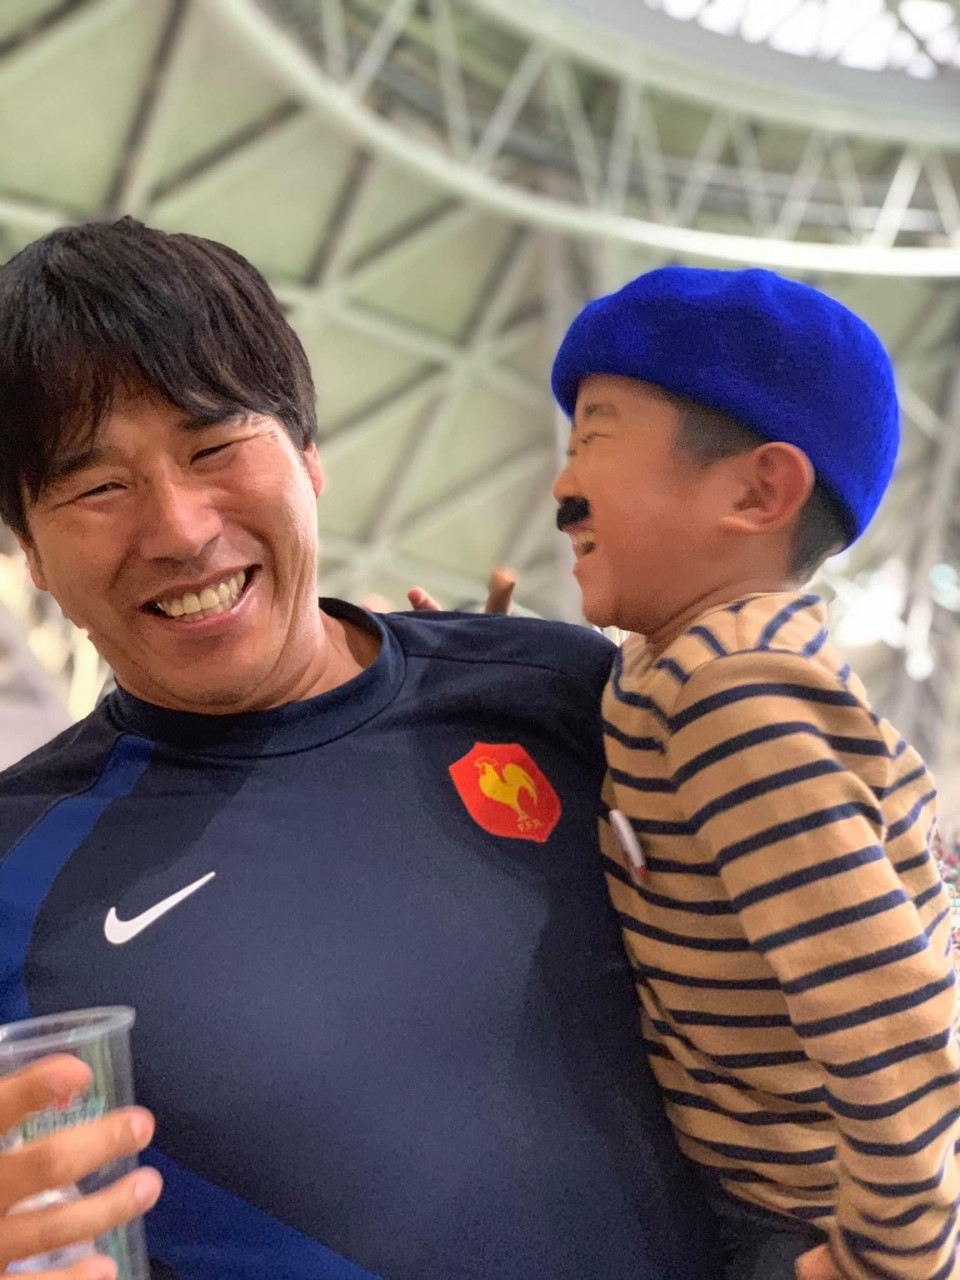 Live from Japan's incredibly welcoming but overwhelming Rugby World Cup